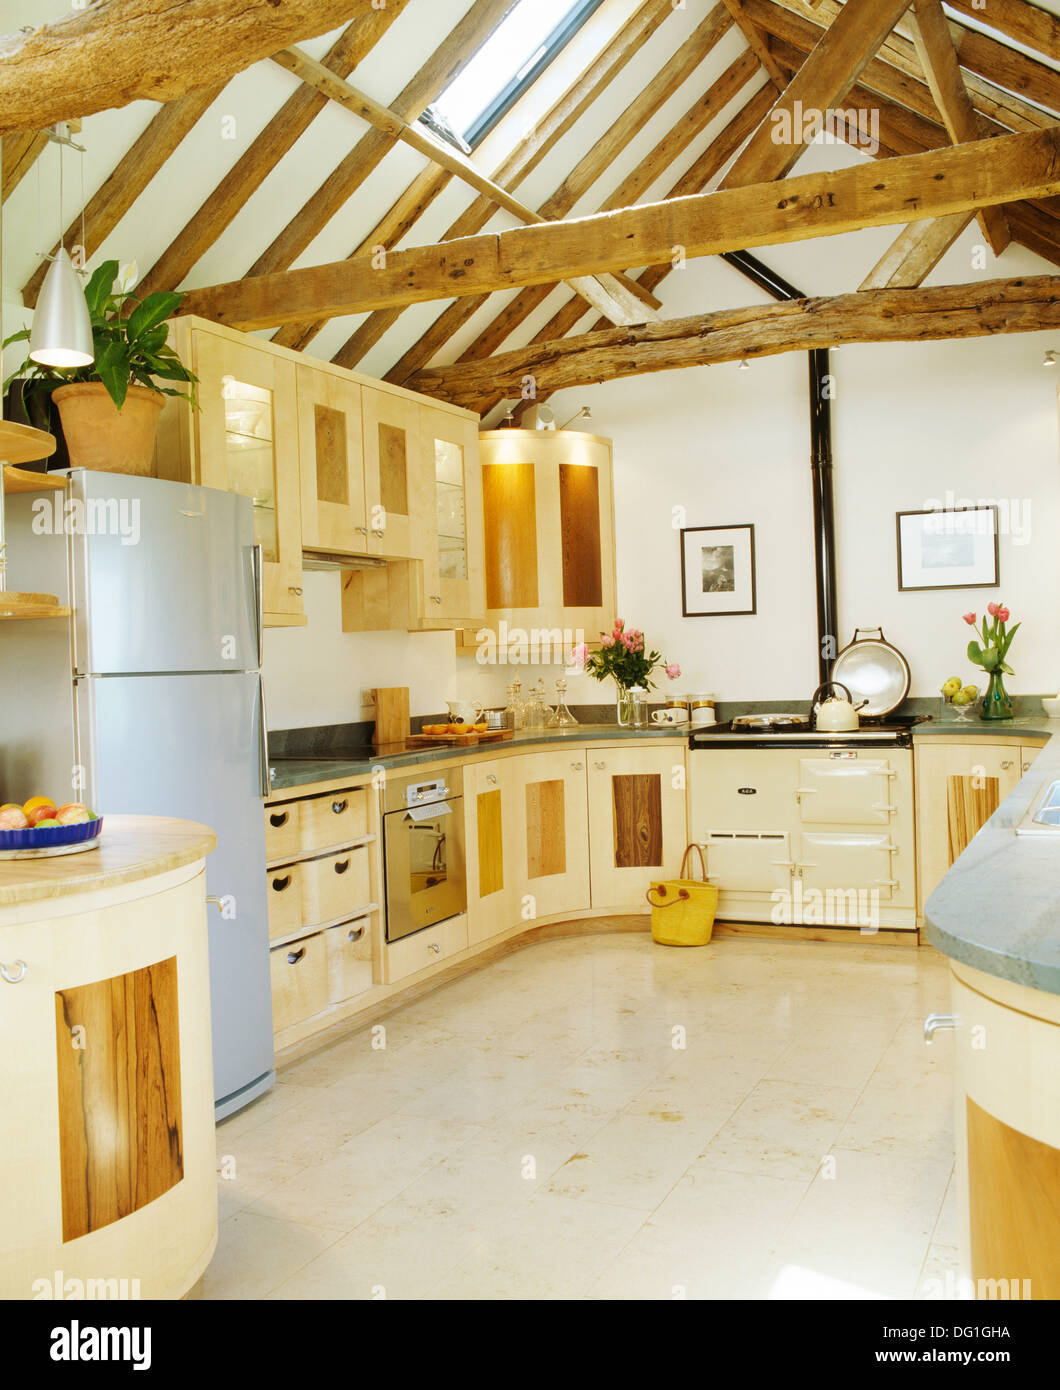 Barn Conversion Kitchens ceramic tiled floor and large refrigerator in contemporary barn